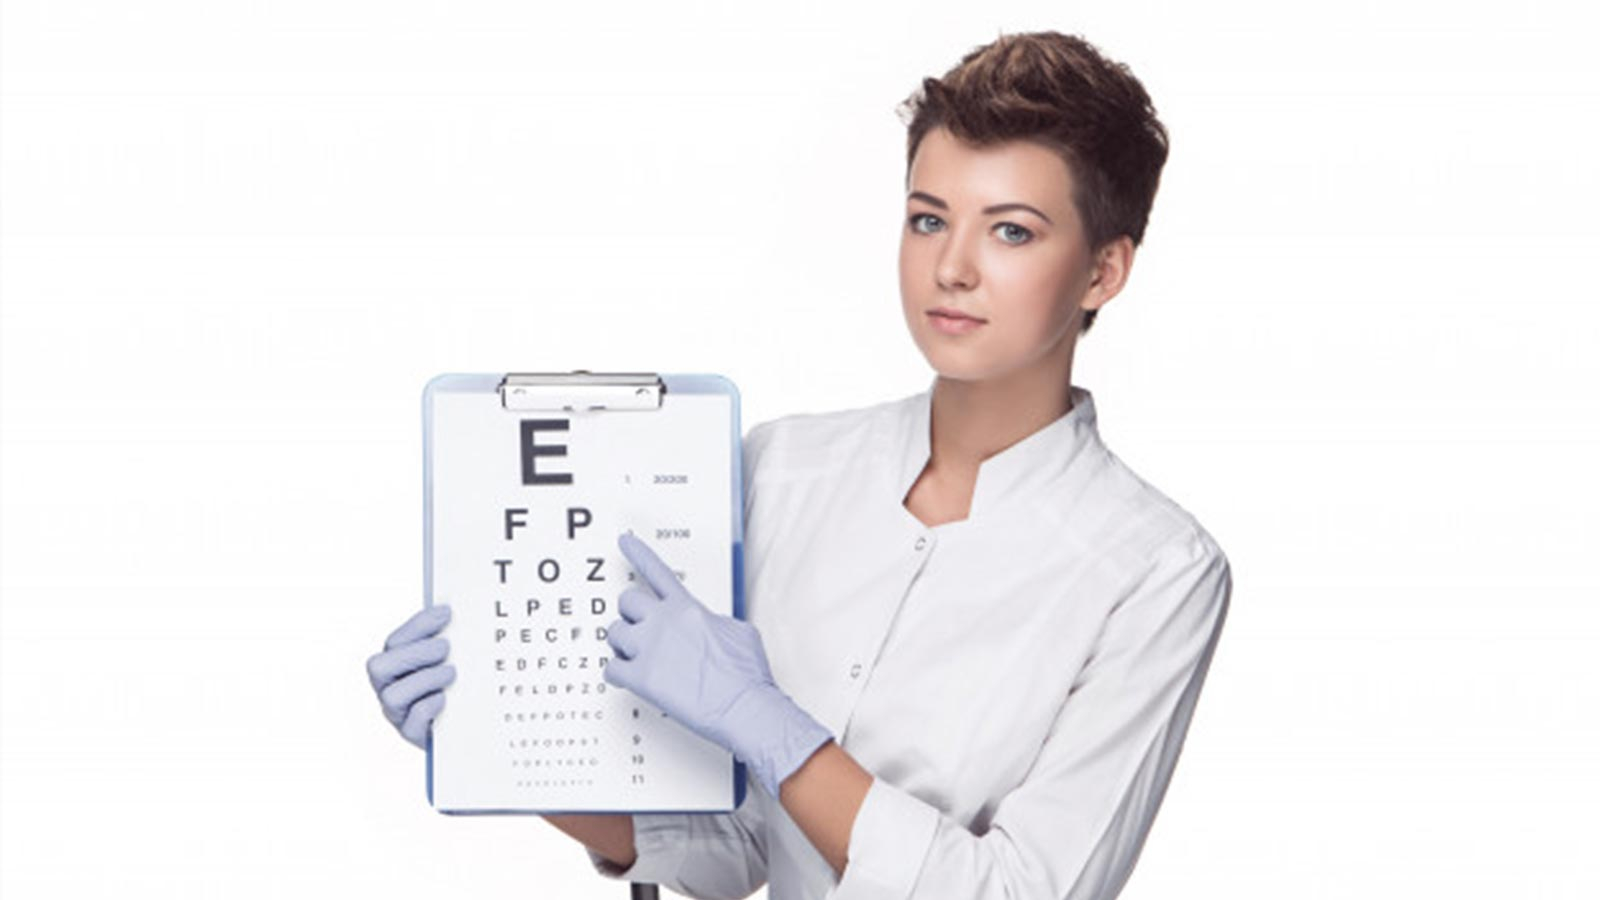 Optometrist - When to consult and educational background